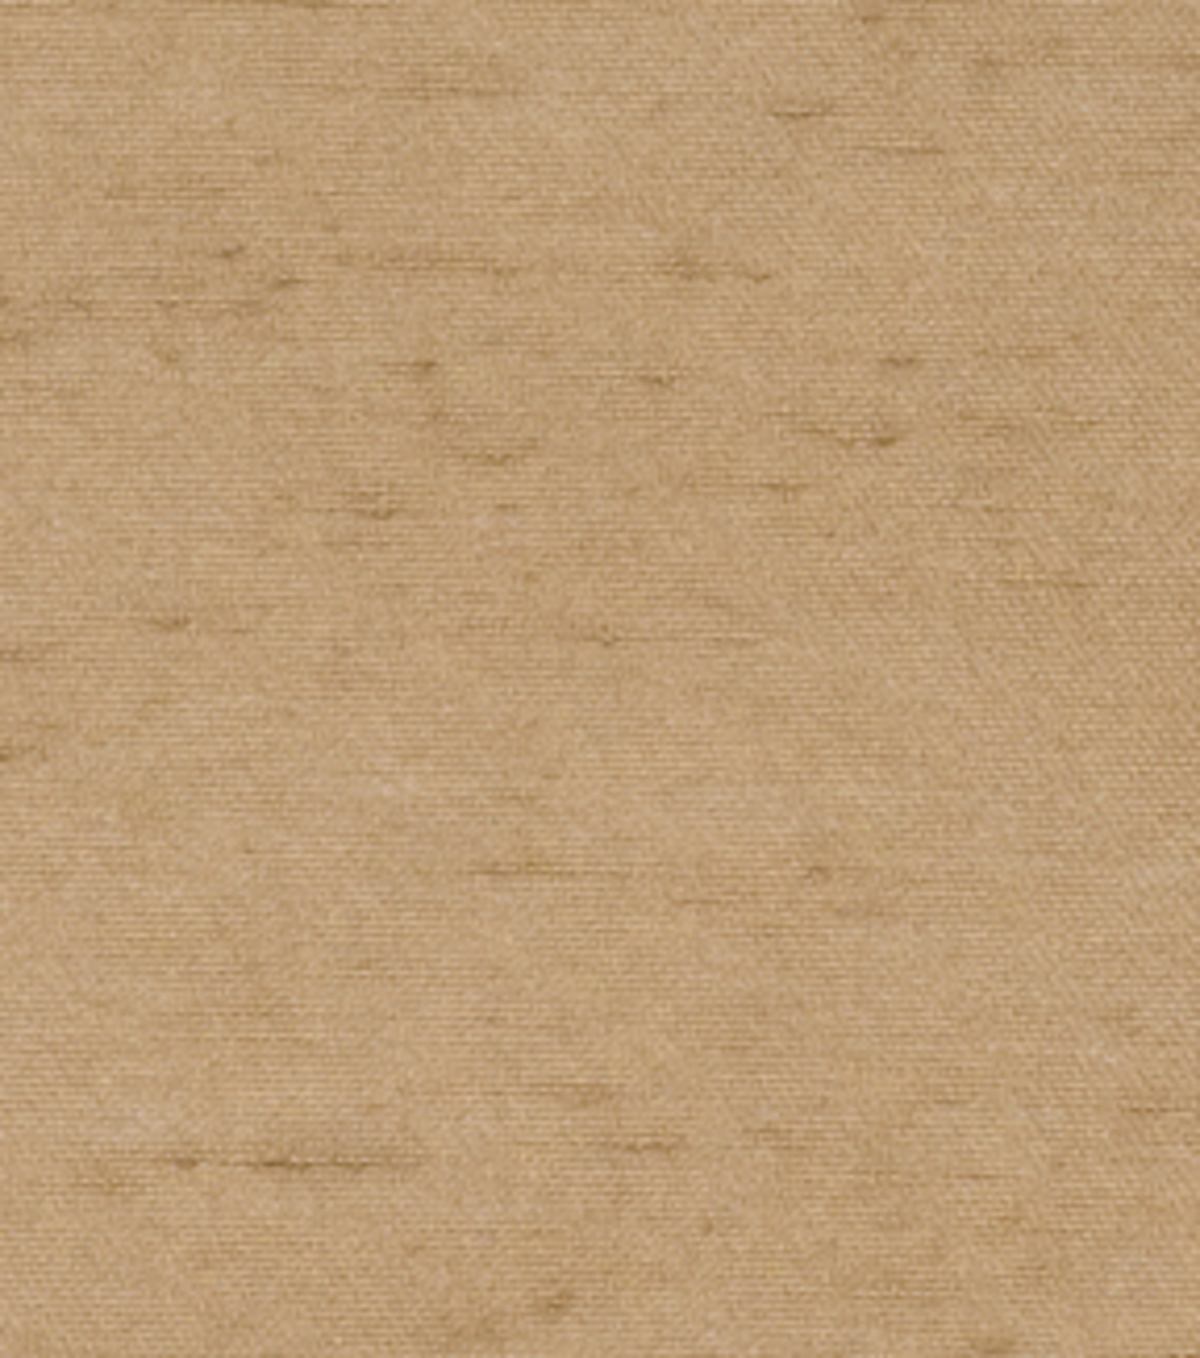 Home Decor 8\u0022x8\u0022 Fabric Swatch-Signature Series Antique Satin Mocha